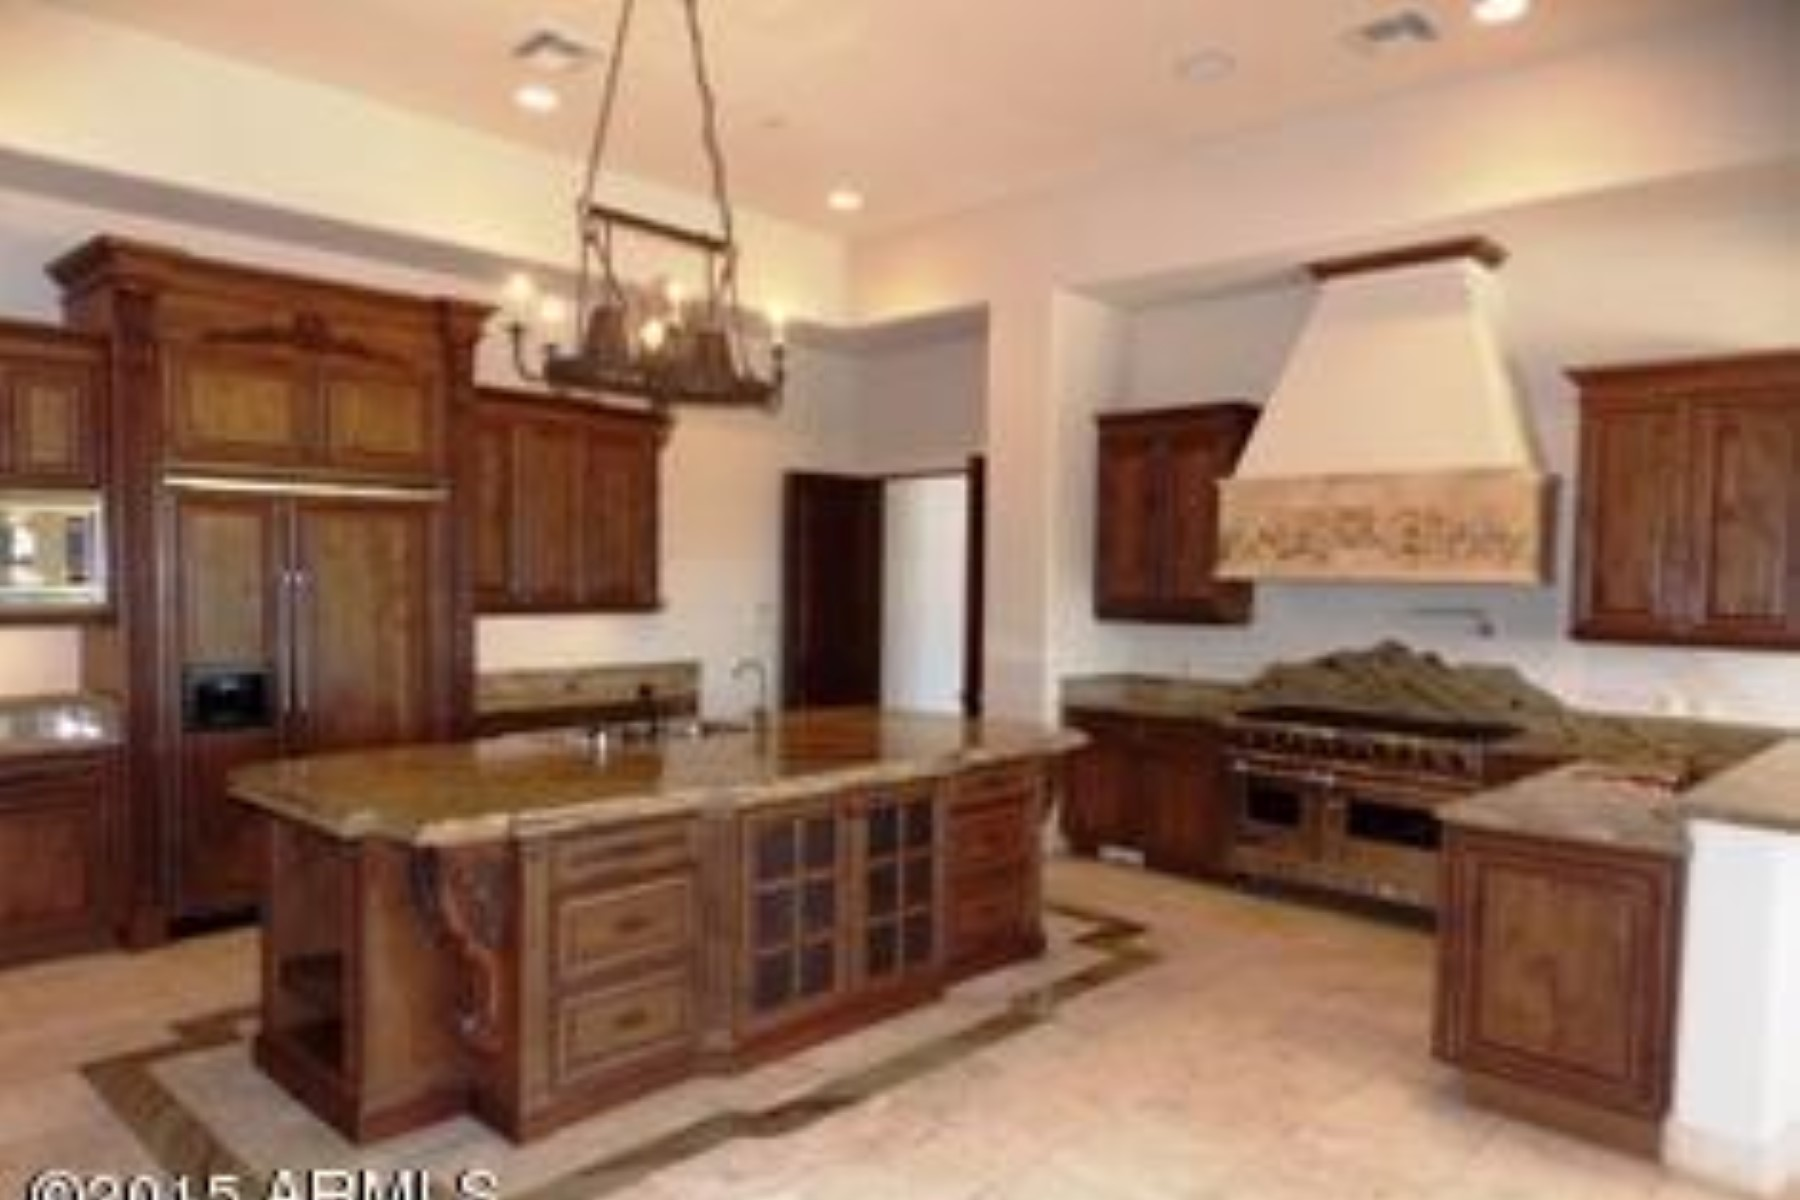 Property For Sale at Tuscan style home with the most desirable finishes.